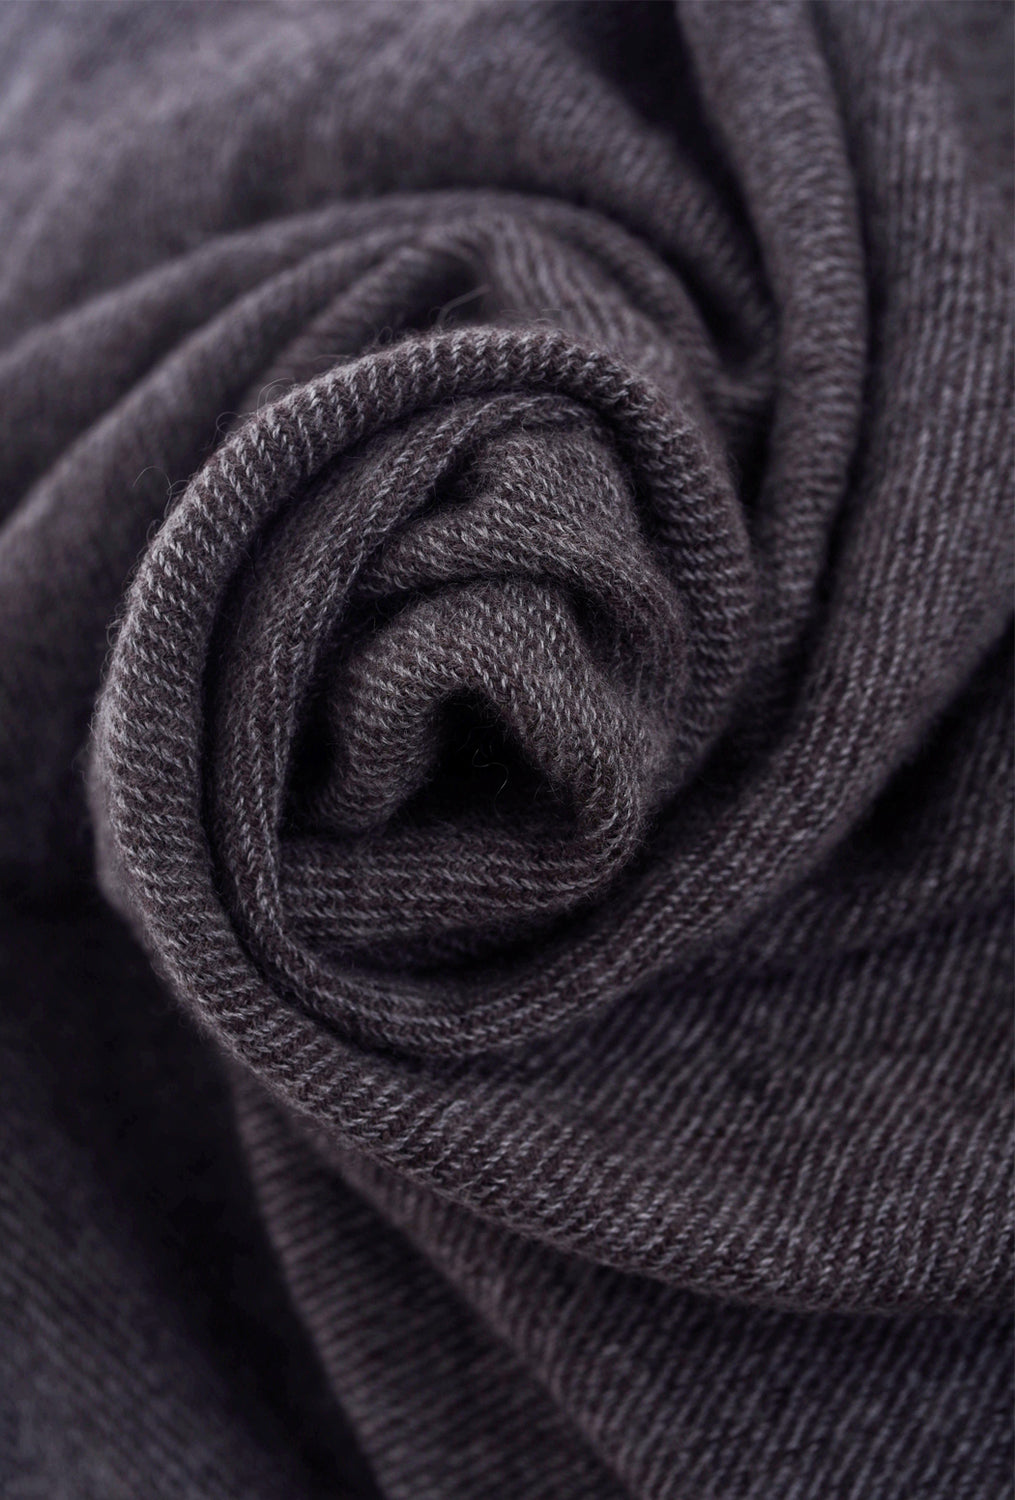 Grisal Grisal Afghan Cashmere Scarf, Smoke Black One Size Black